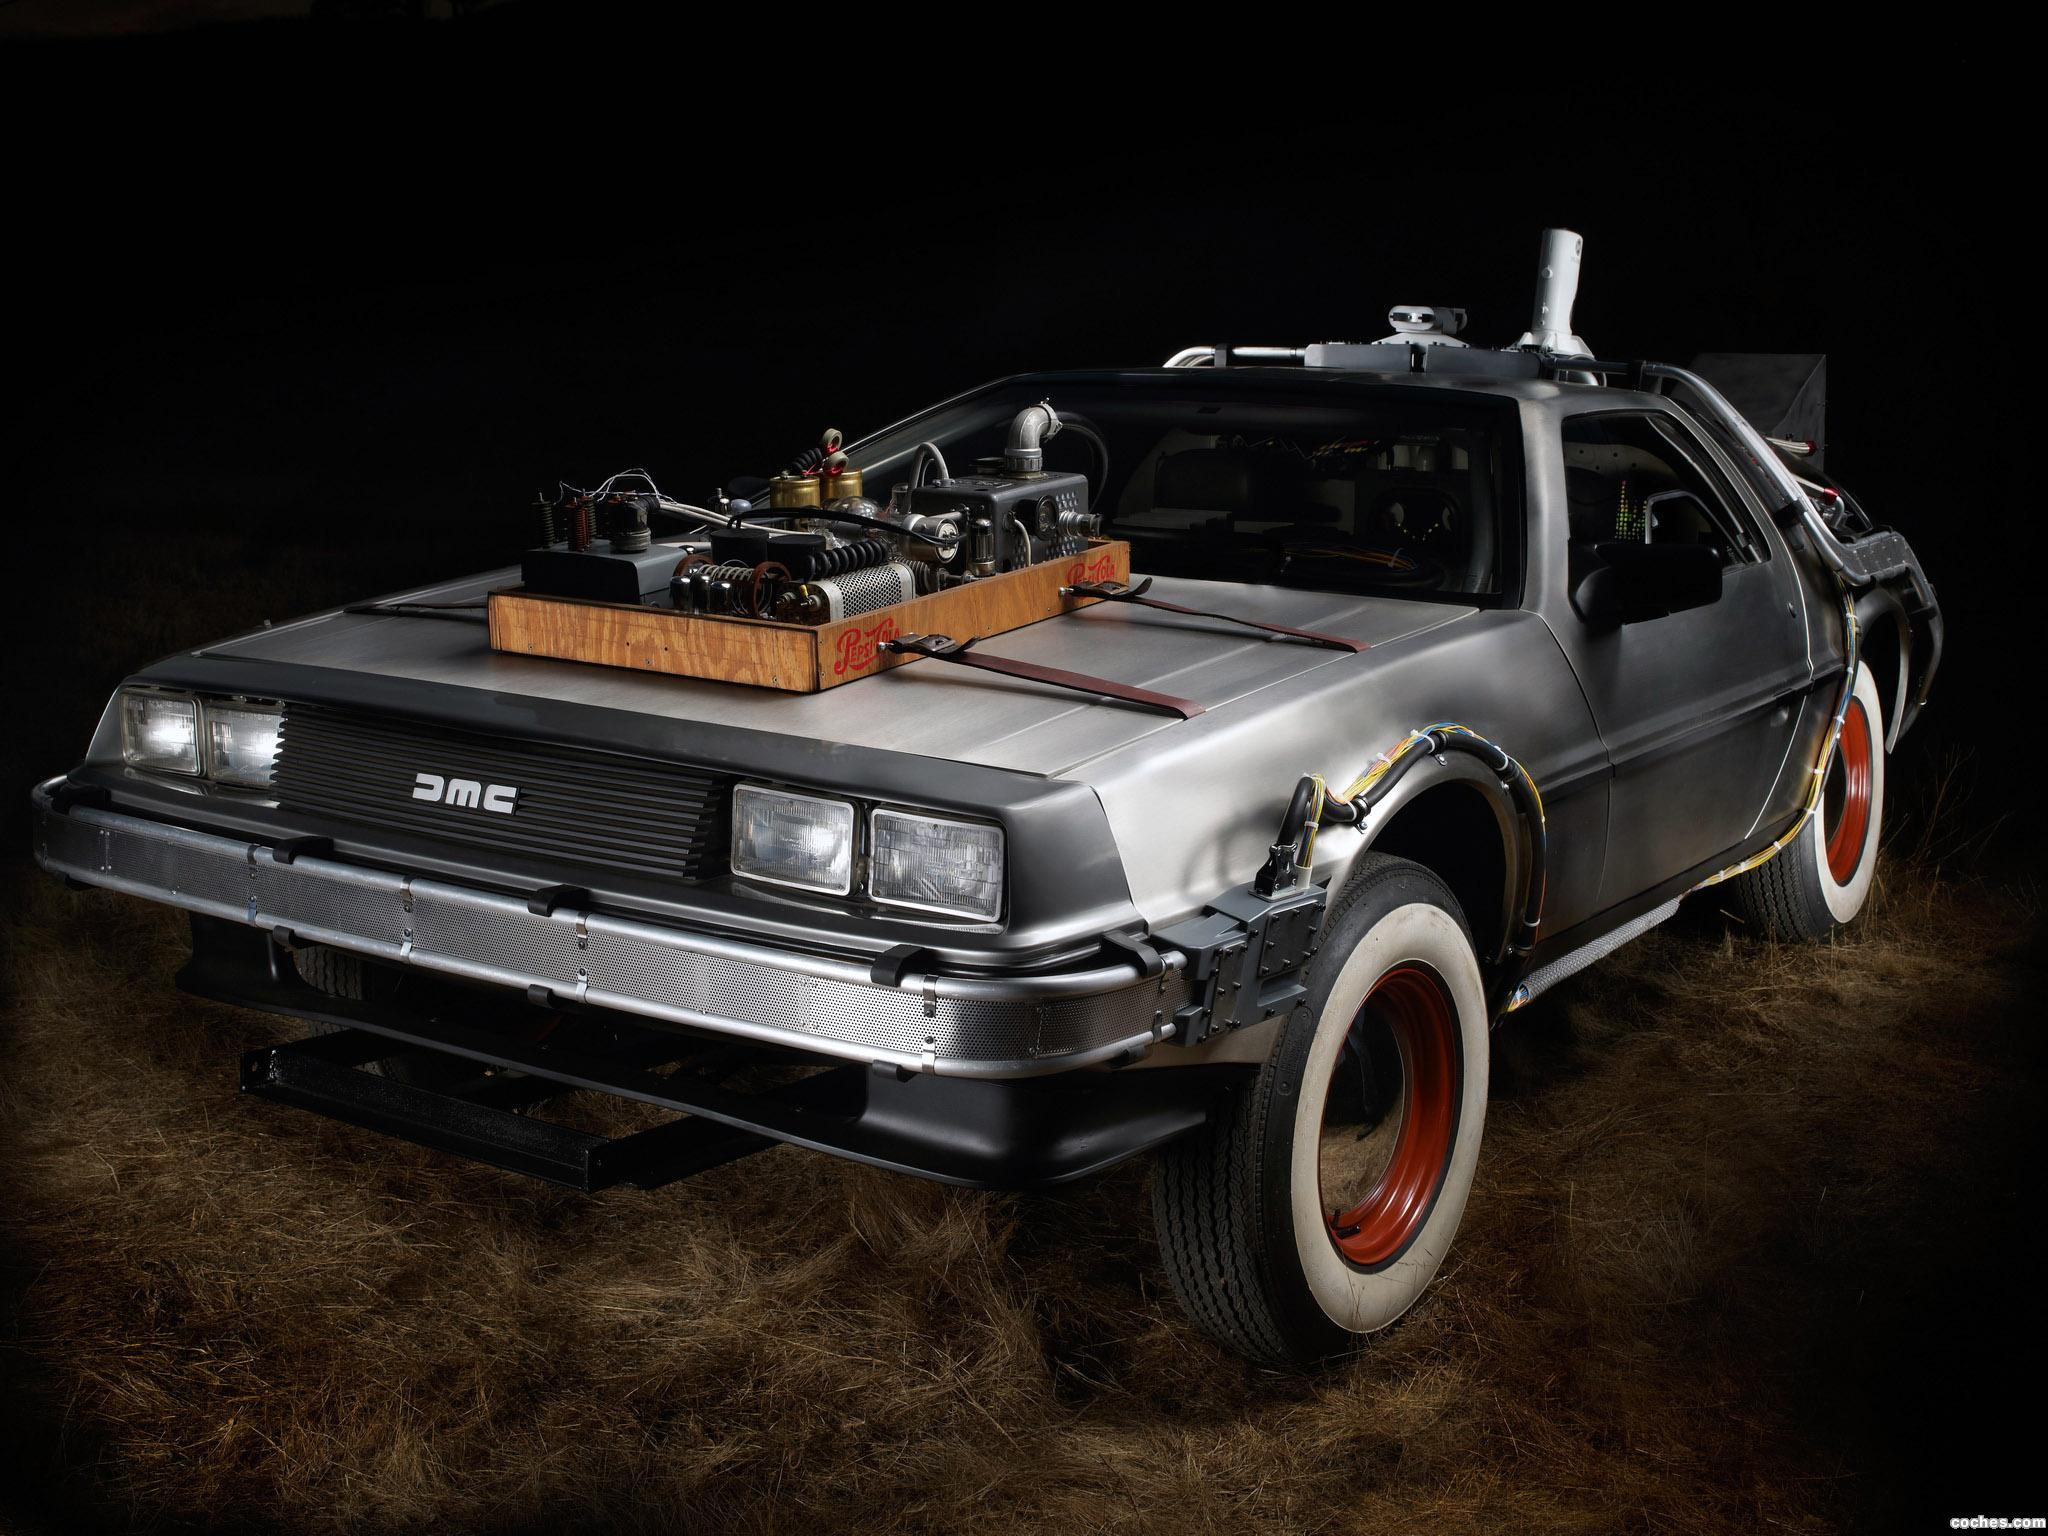 Foto 0 de DMC DeLorean DMC-12 Back To The Future 1985